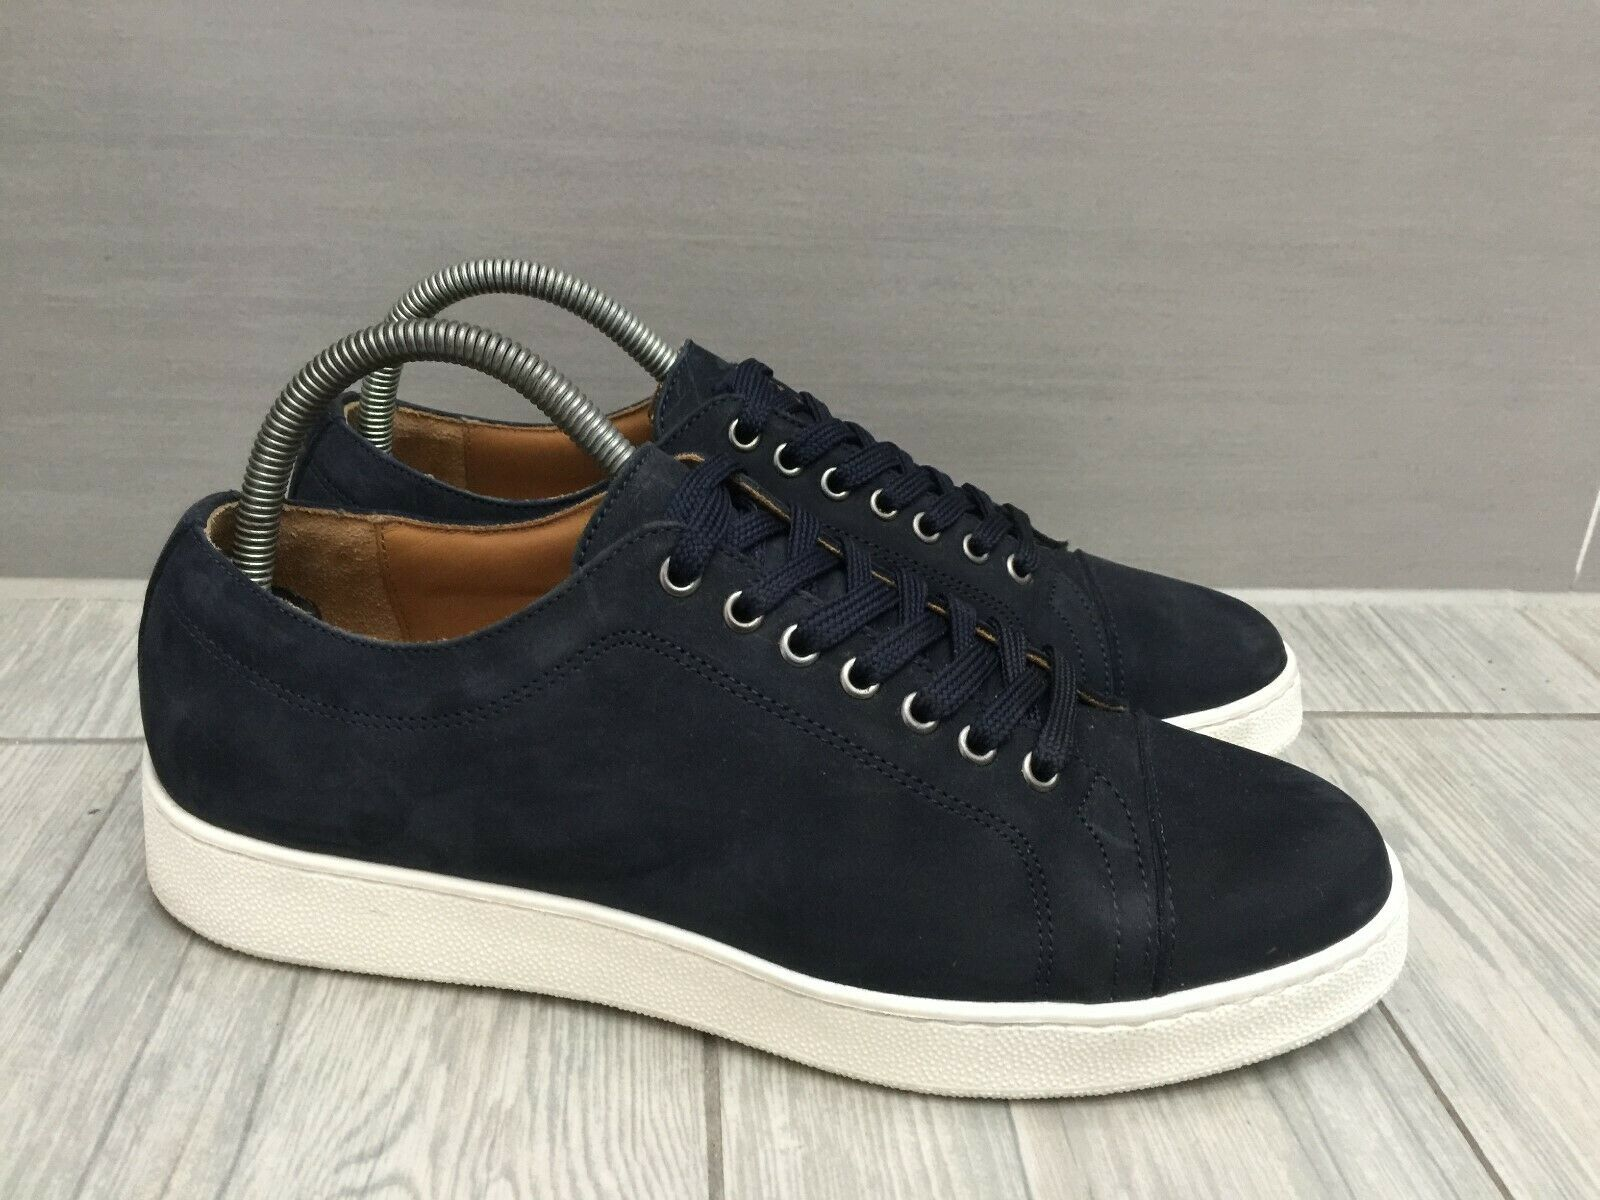 CHARLES TYRWHITT NAVY SUEDE LEATHER EXTRA LIGHTWEIGHT SMART WORK Turnschuhe UK 7.5